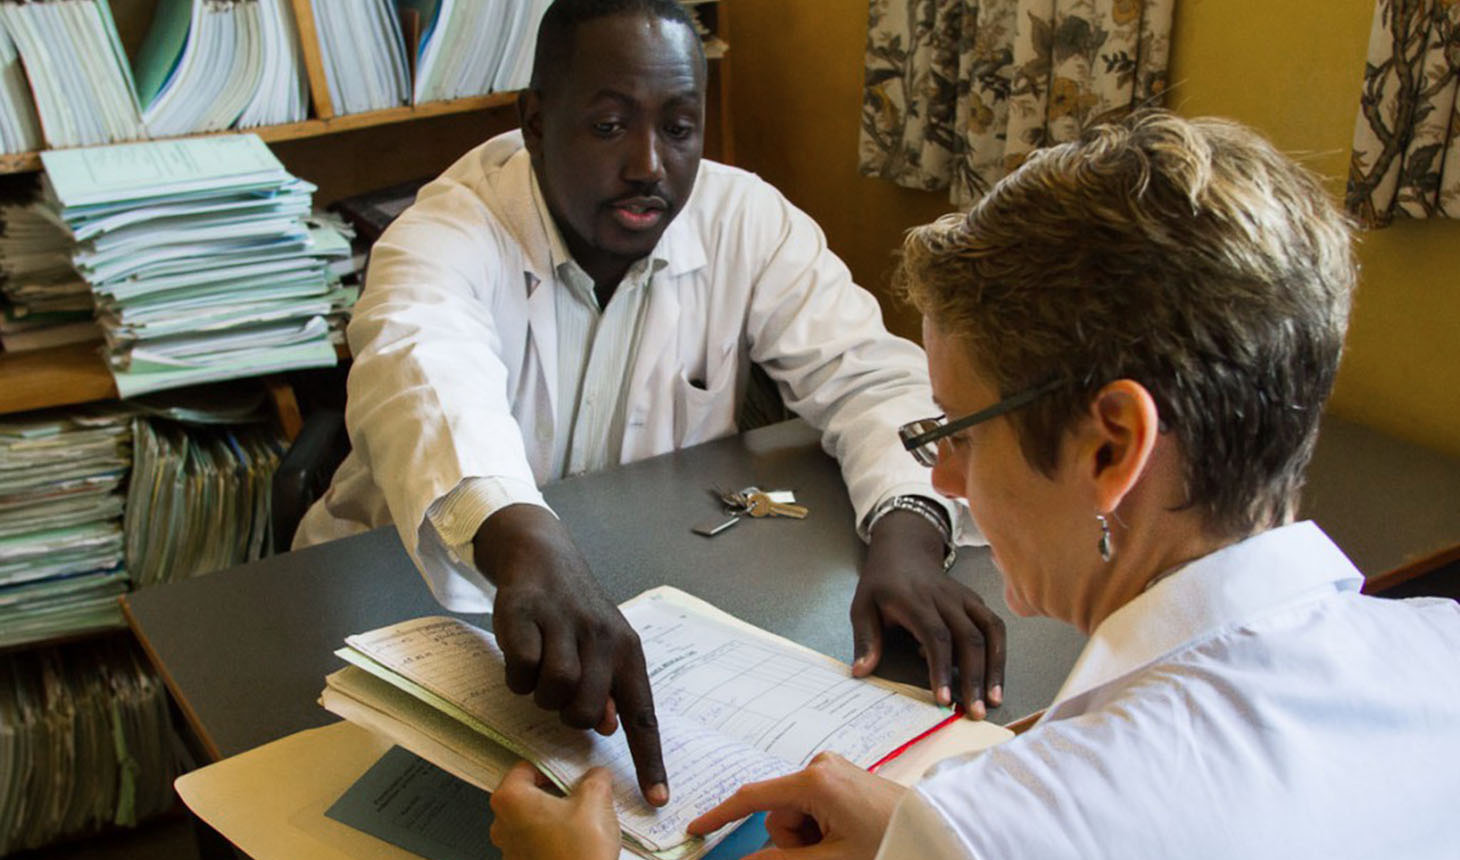 Dr. Jean-Luc Nkurikiyimfura, a Rwandan physician, works with Dr. Lisa Adams as part of the Human Resources for Health Program. Photo by Lars Blackmore.